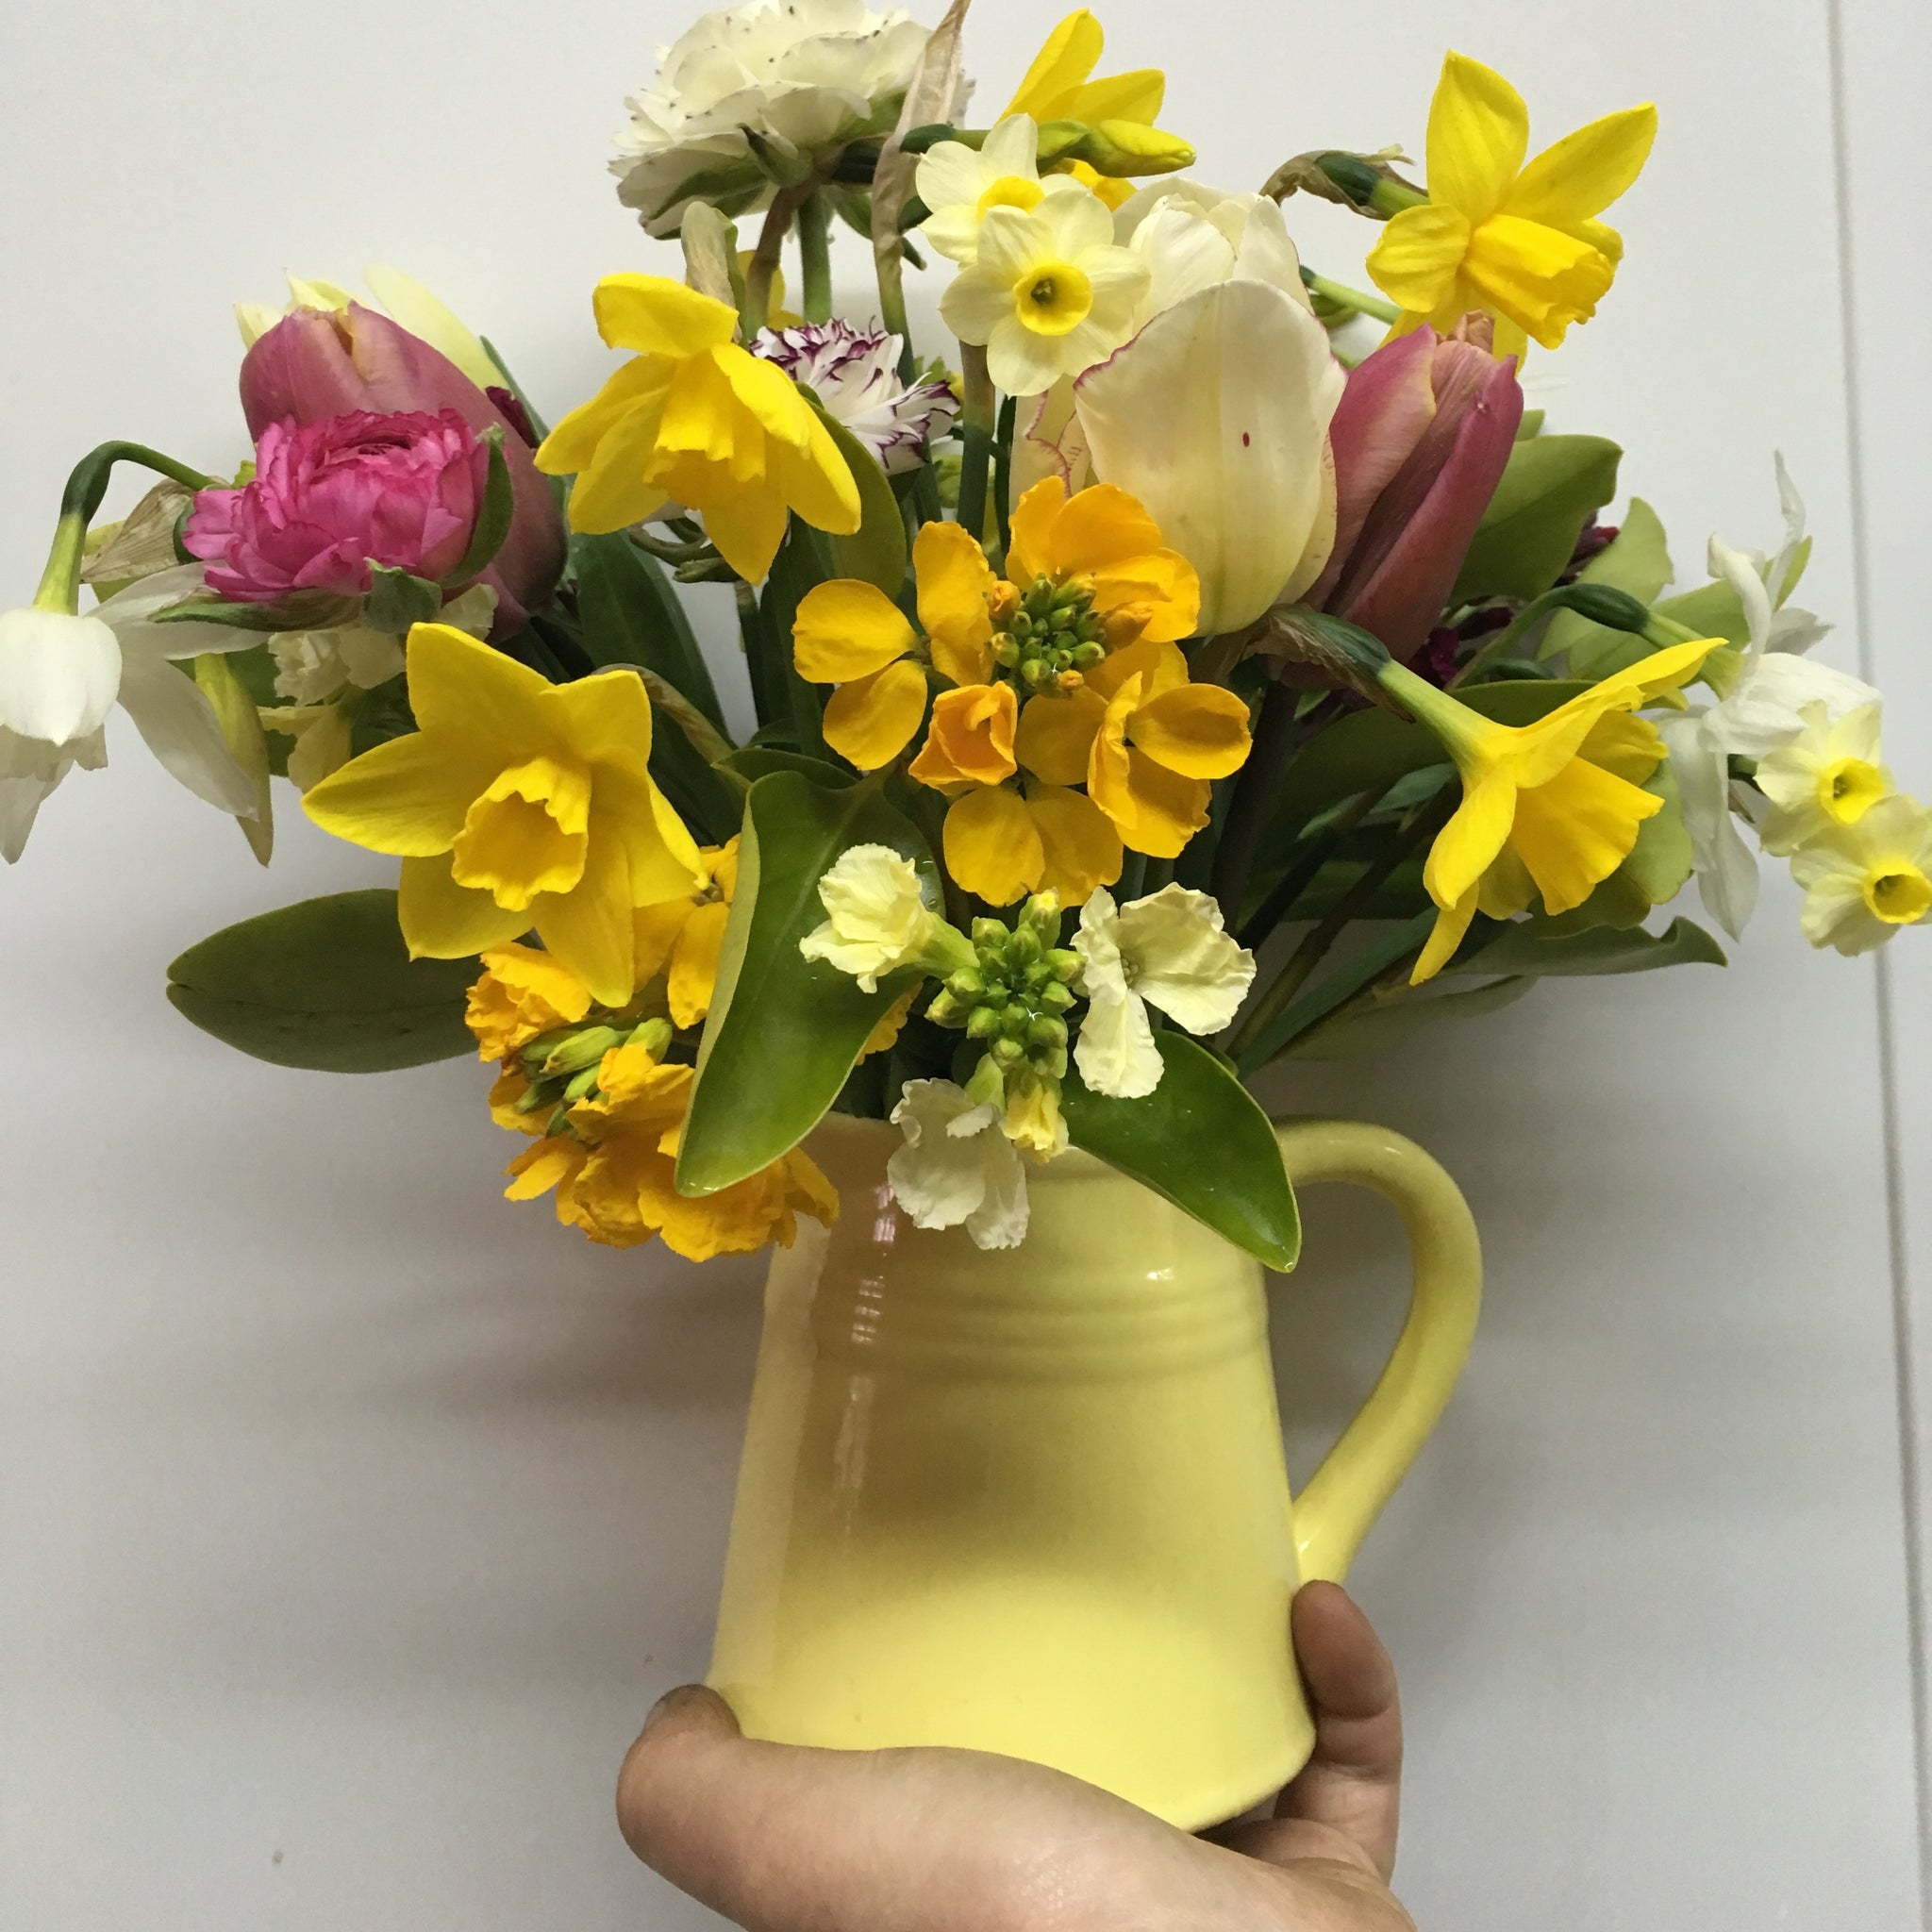 Jug -or- Bowl of Seasonal Welsh Flowers